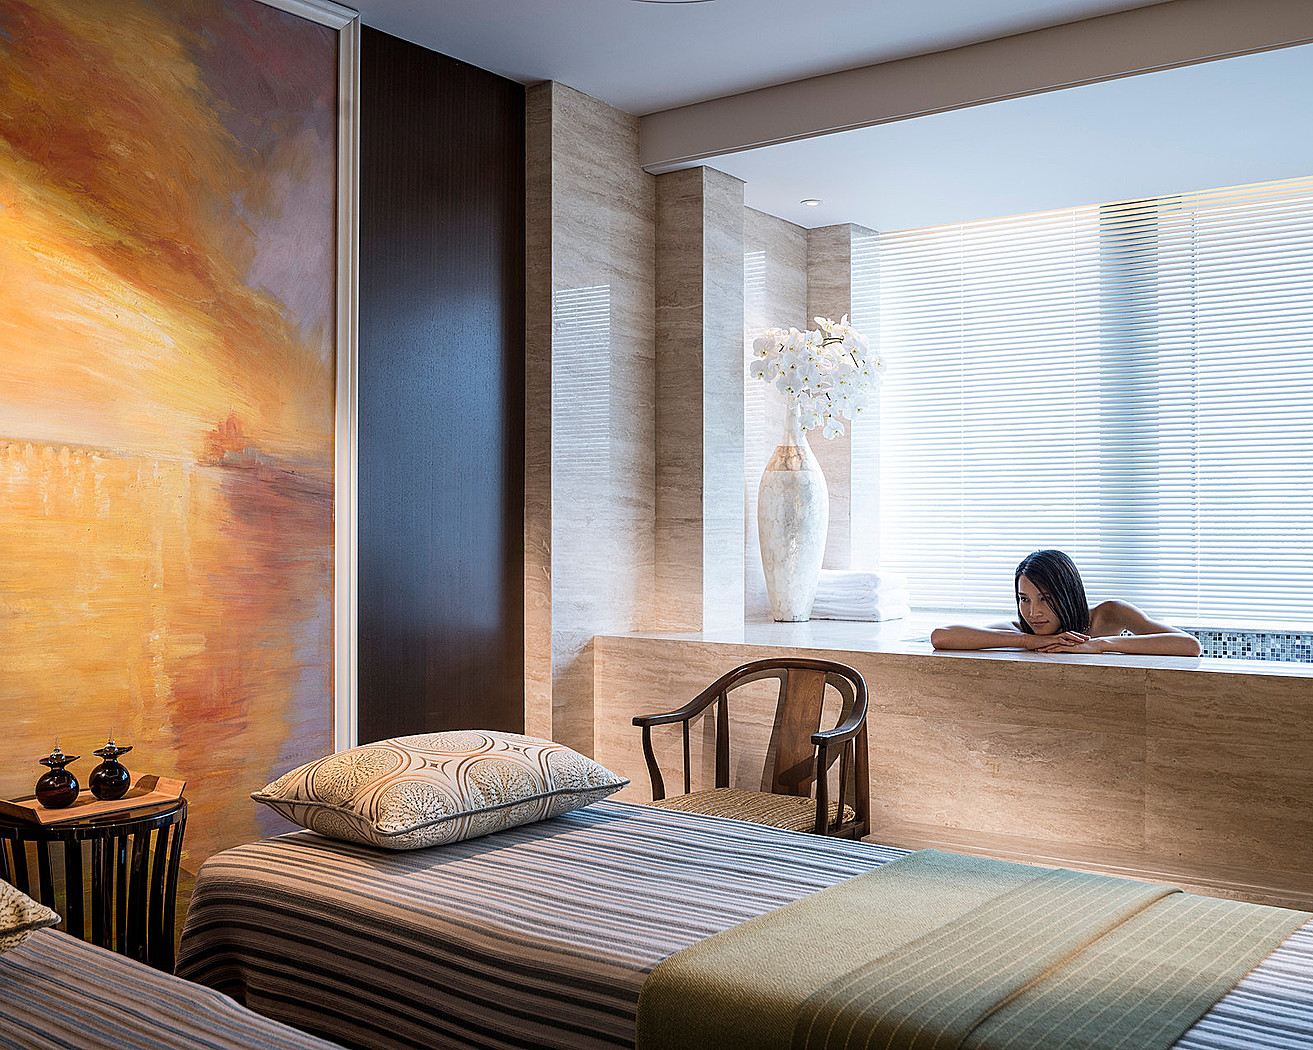 Yue Spa at Four Seasons Hotel Shenzhen